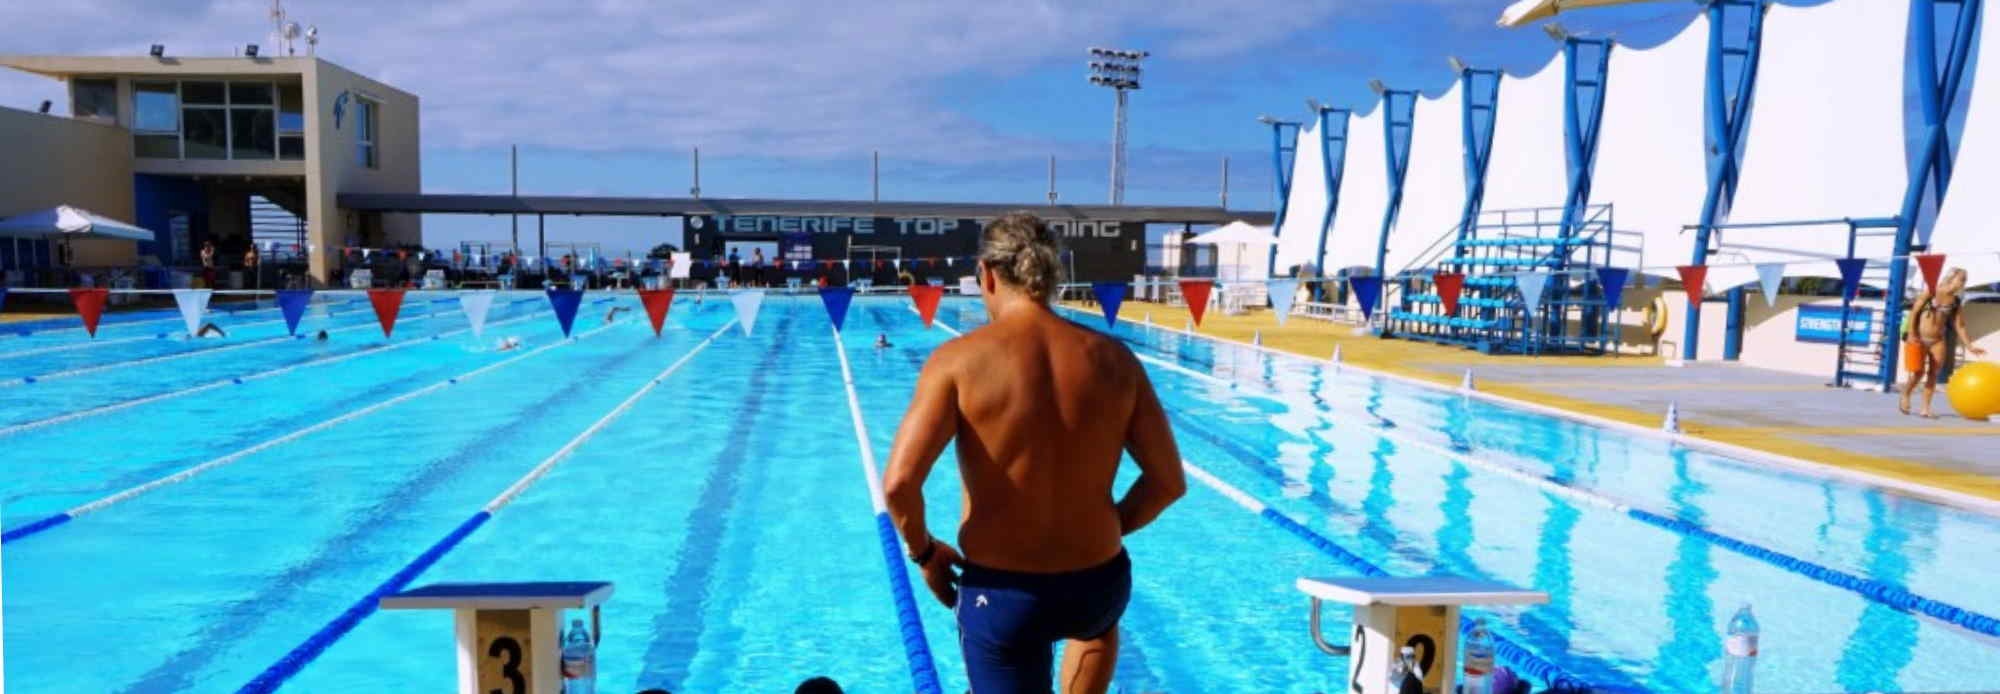 sports holidays swim camps europe spain tenerife